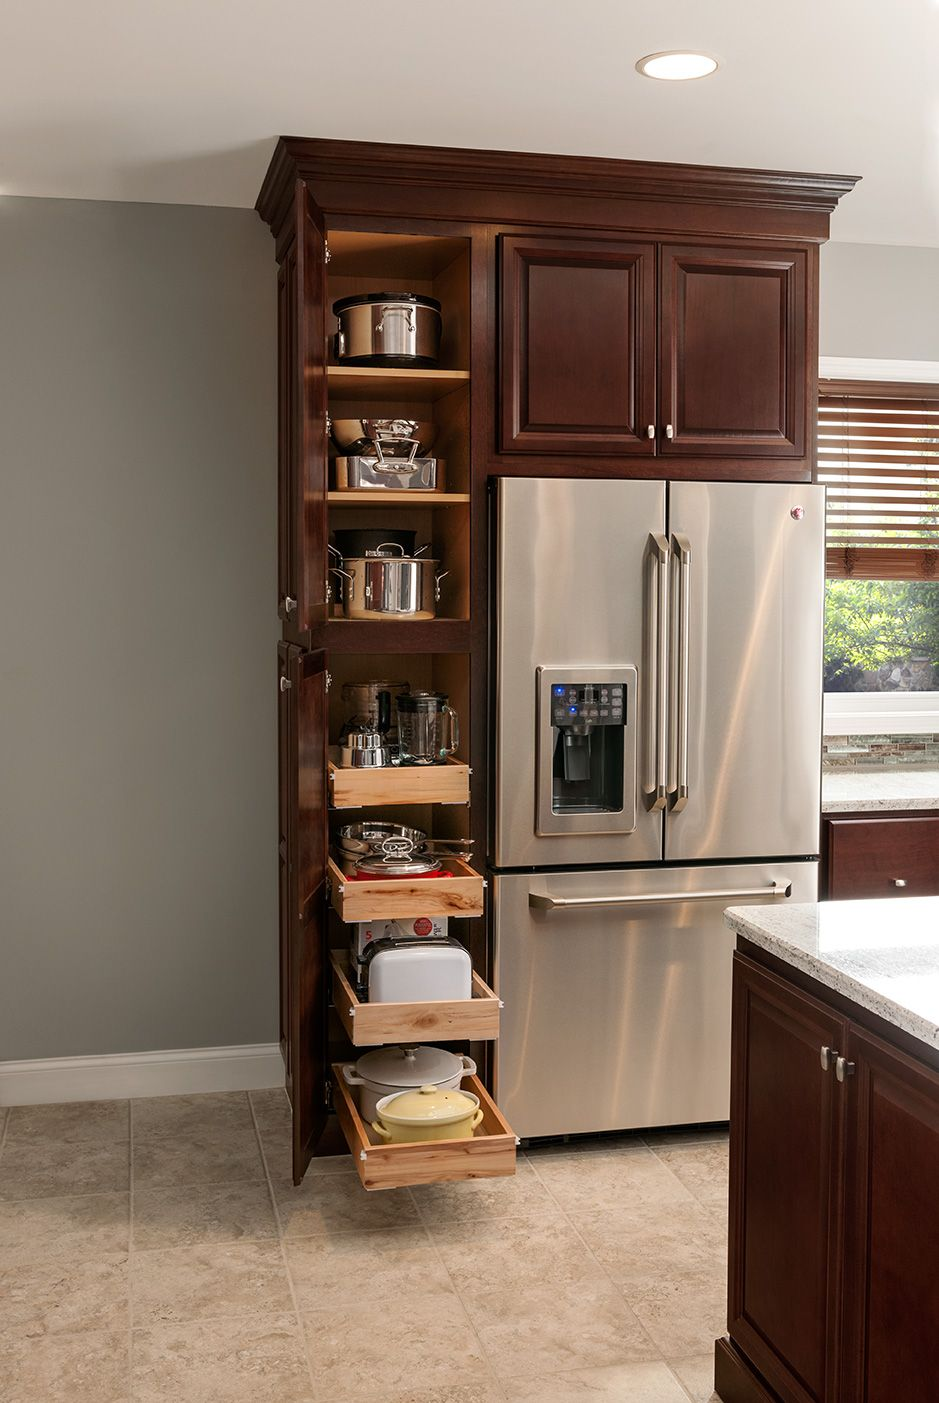 American Woodmark Cabinets Exclusively At The Home Depot Kitchen Remodel Small Kitchen Cabinet Storage Diy Kitchen Cabinets